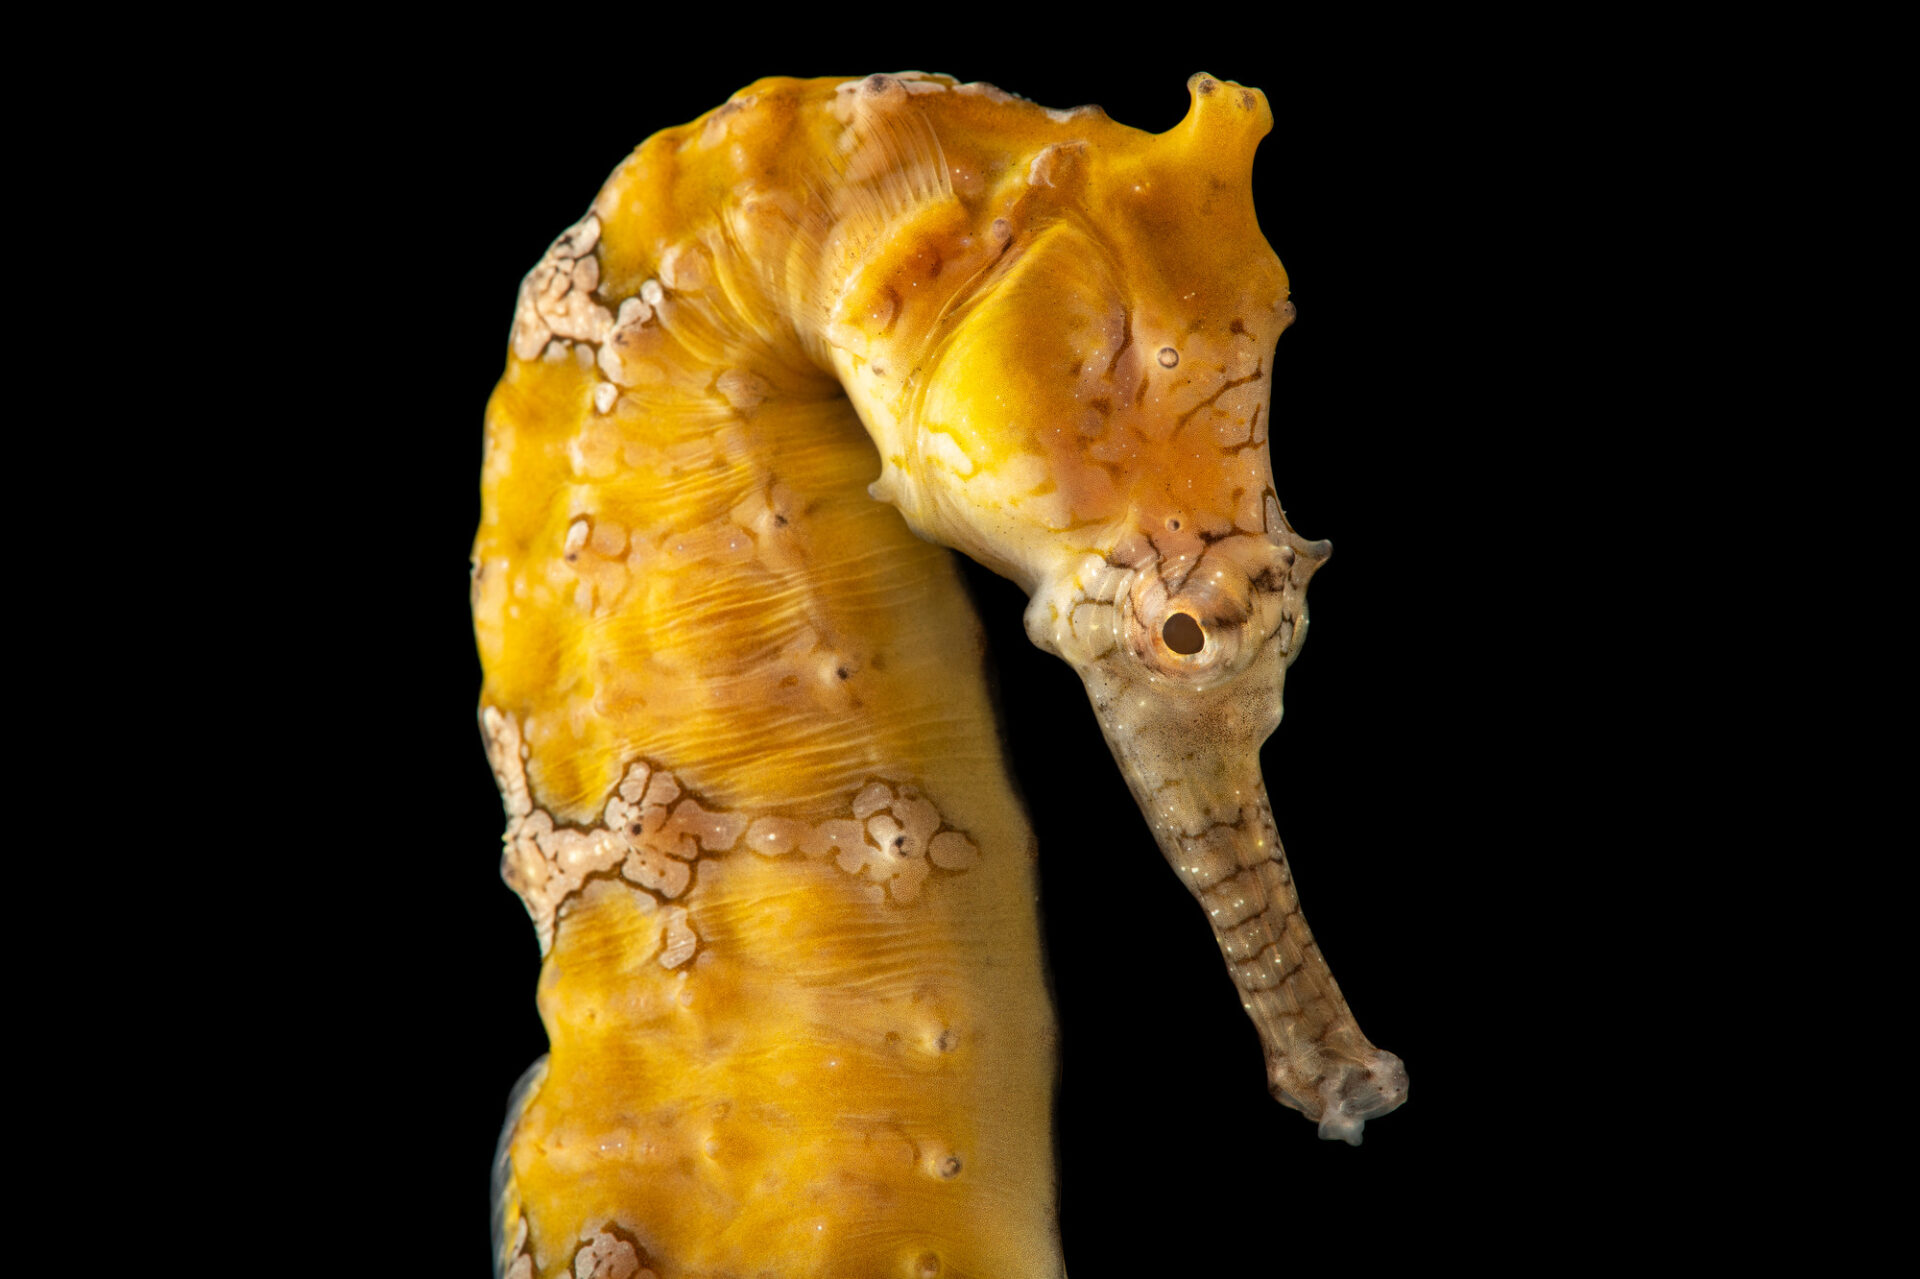 Photo: A West Australian seahorse (Hippocampus subelongatus) at Aquarium Berlin.